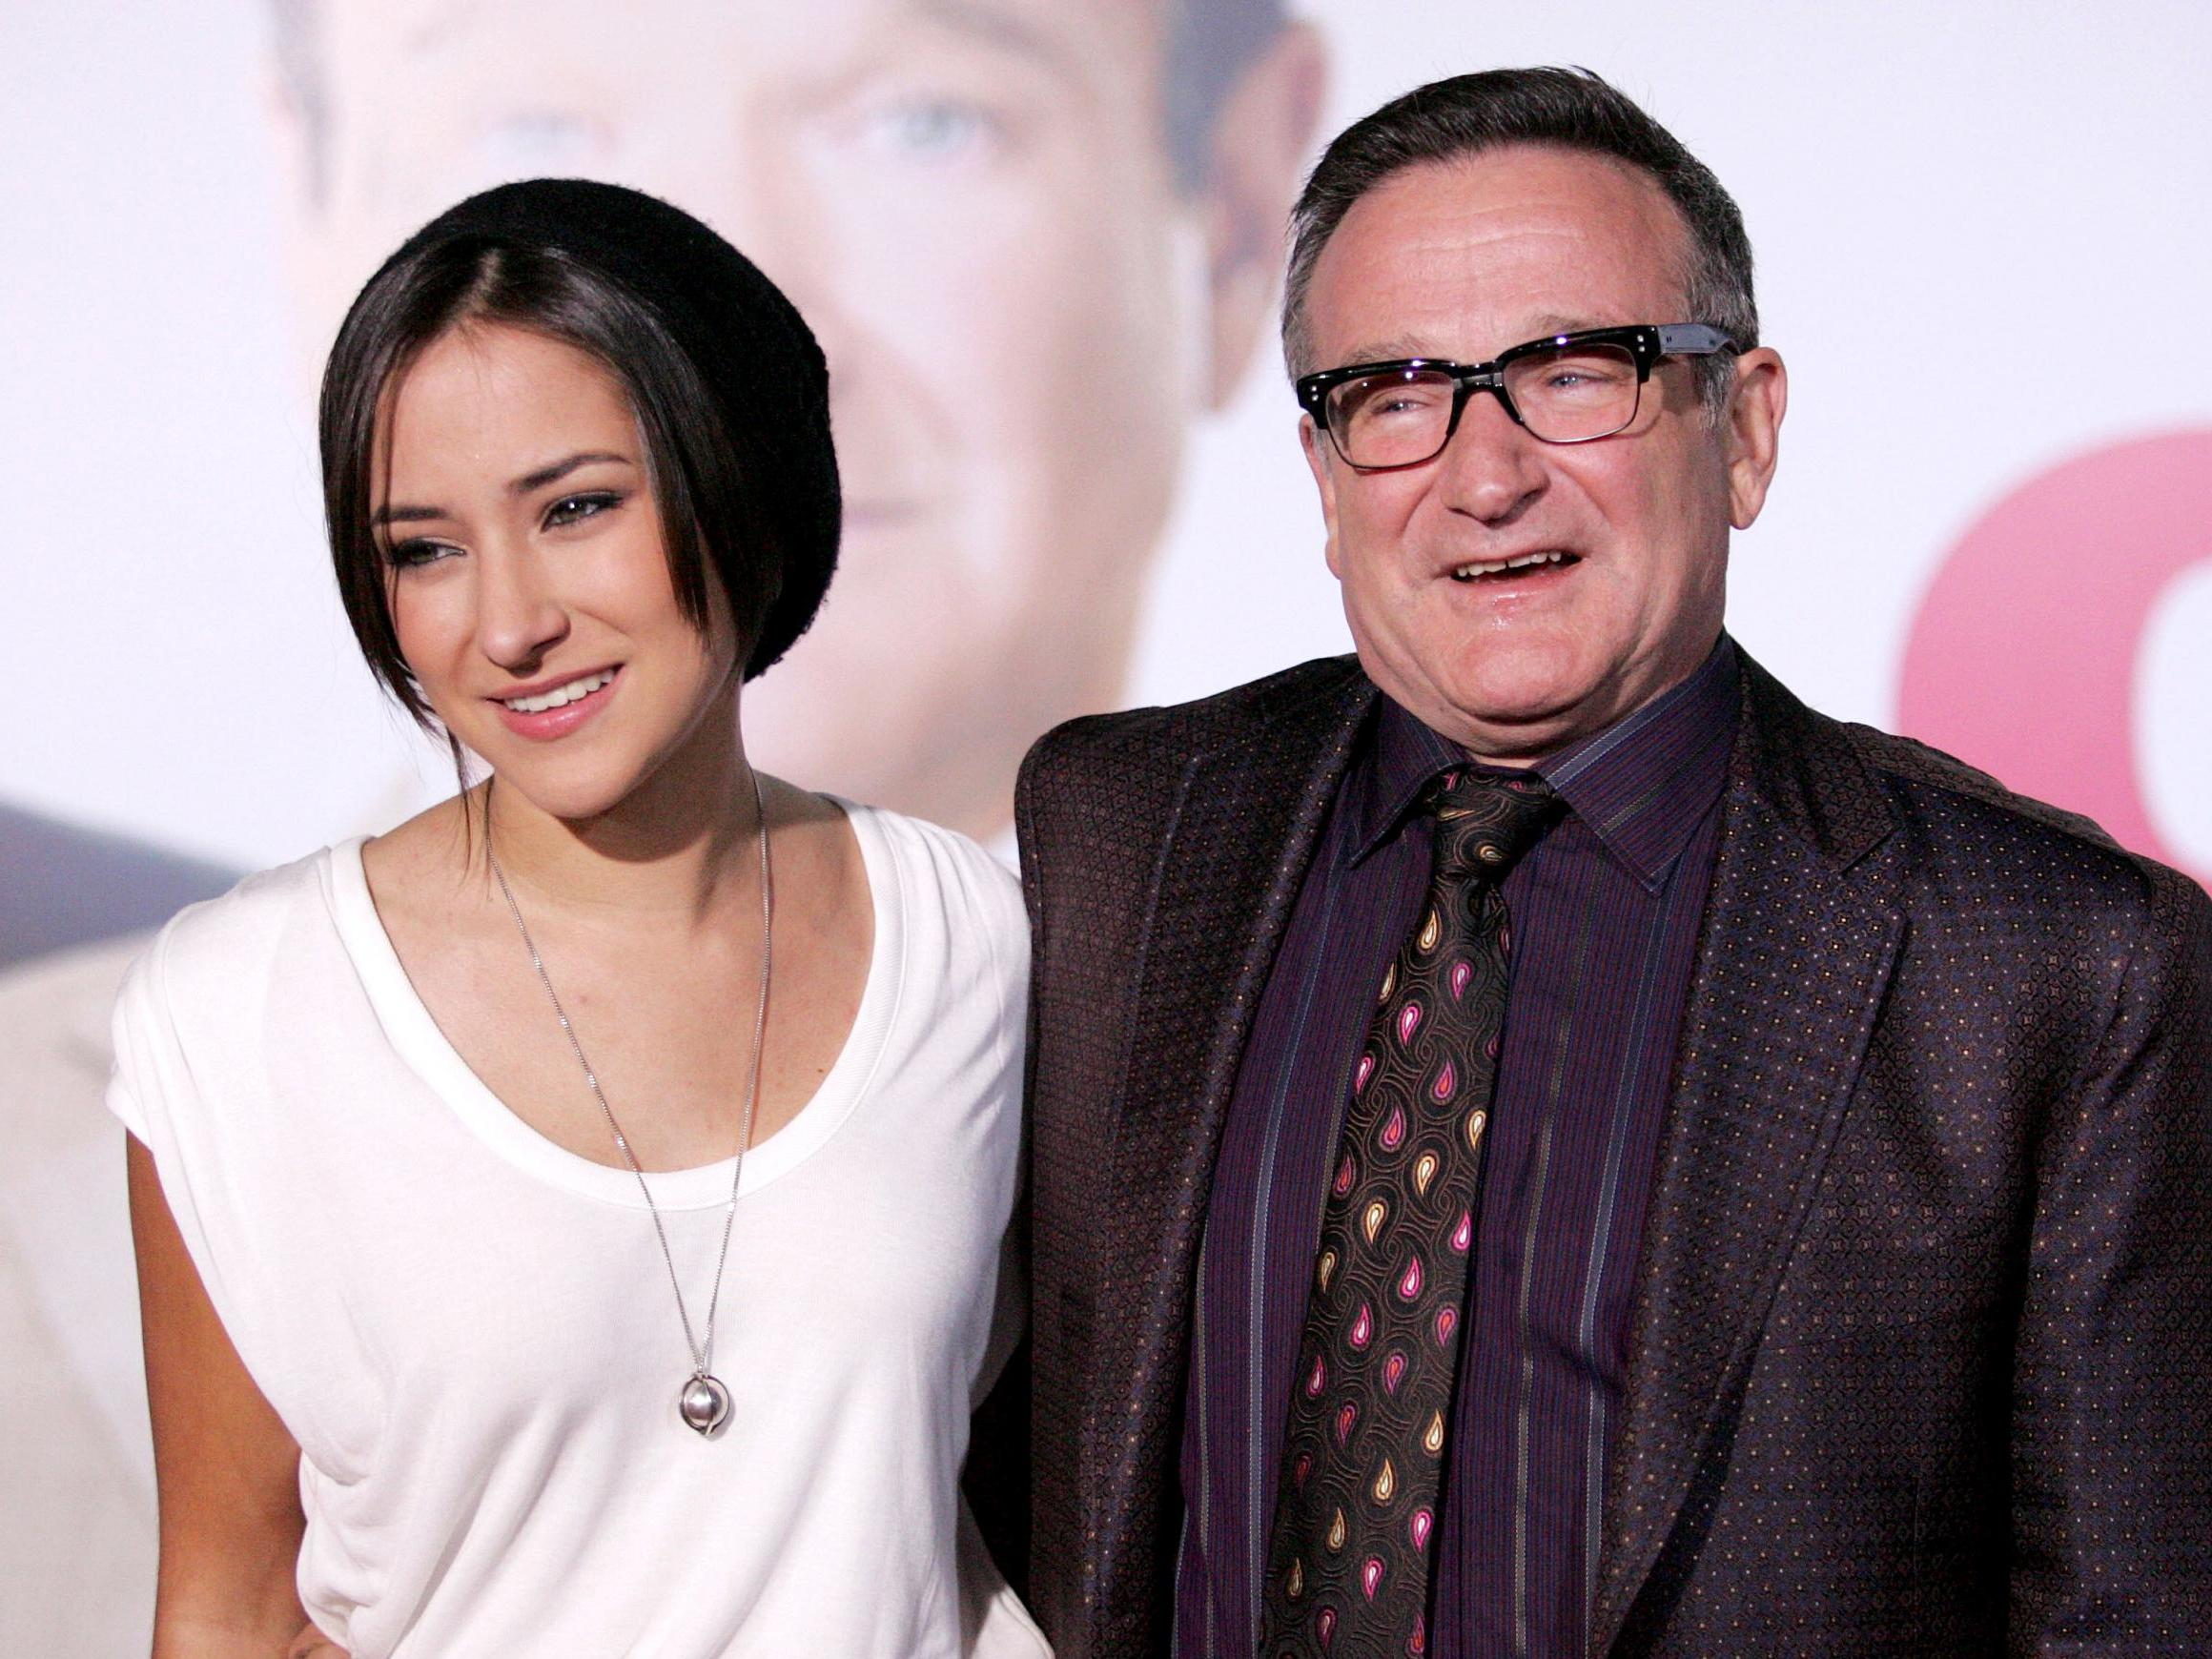 Robin Williams Daughter Zelda Donates To Homeless Shelters To Mark Actor S 69th Birthday The Independent The Independent